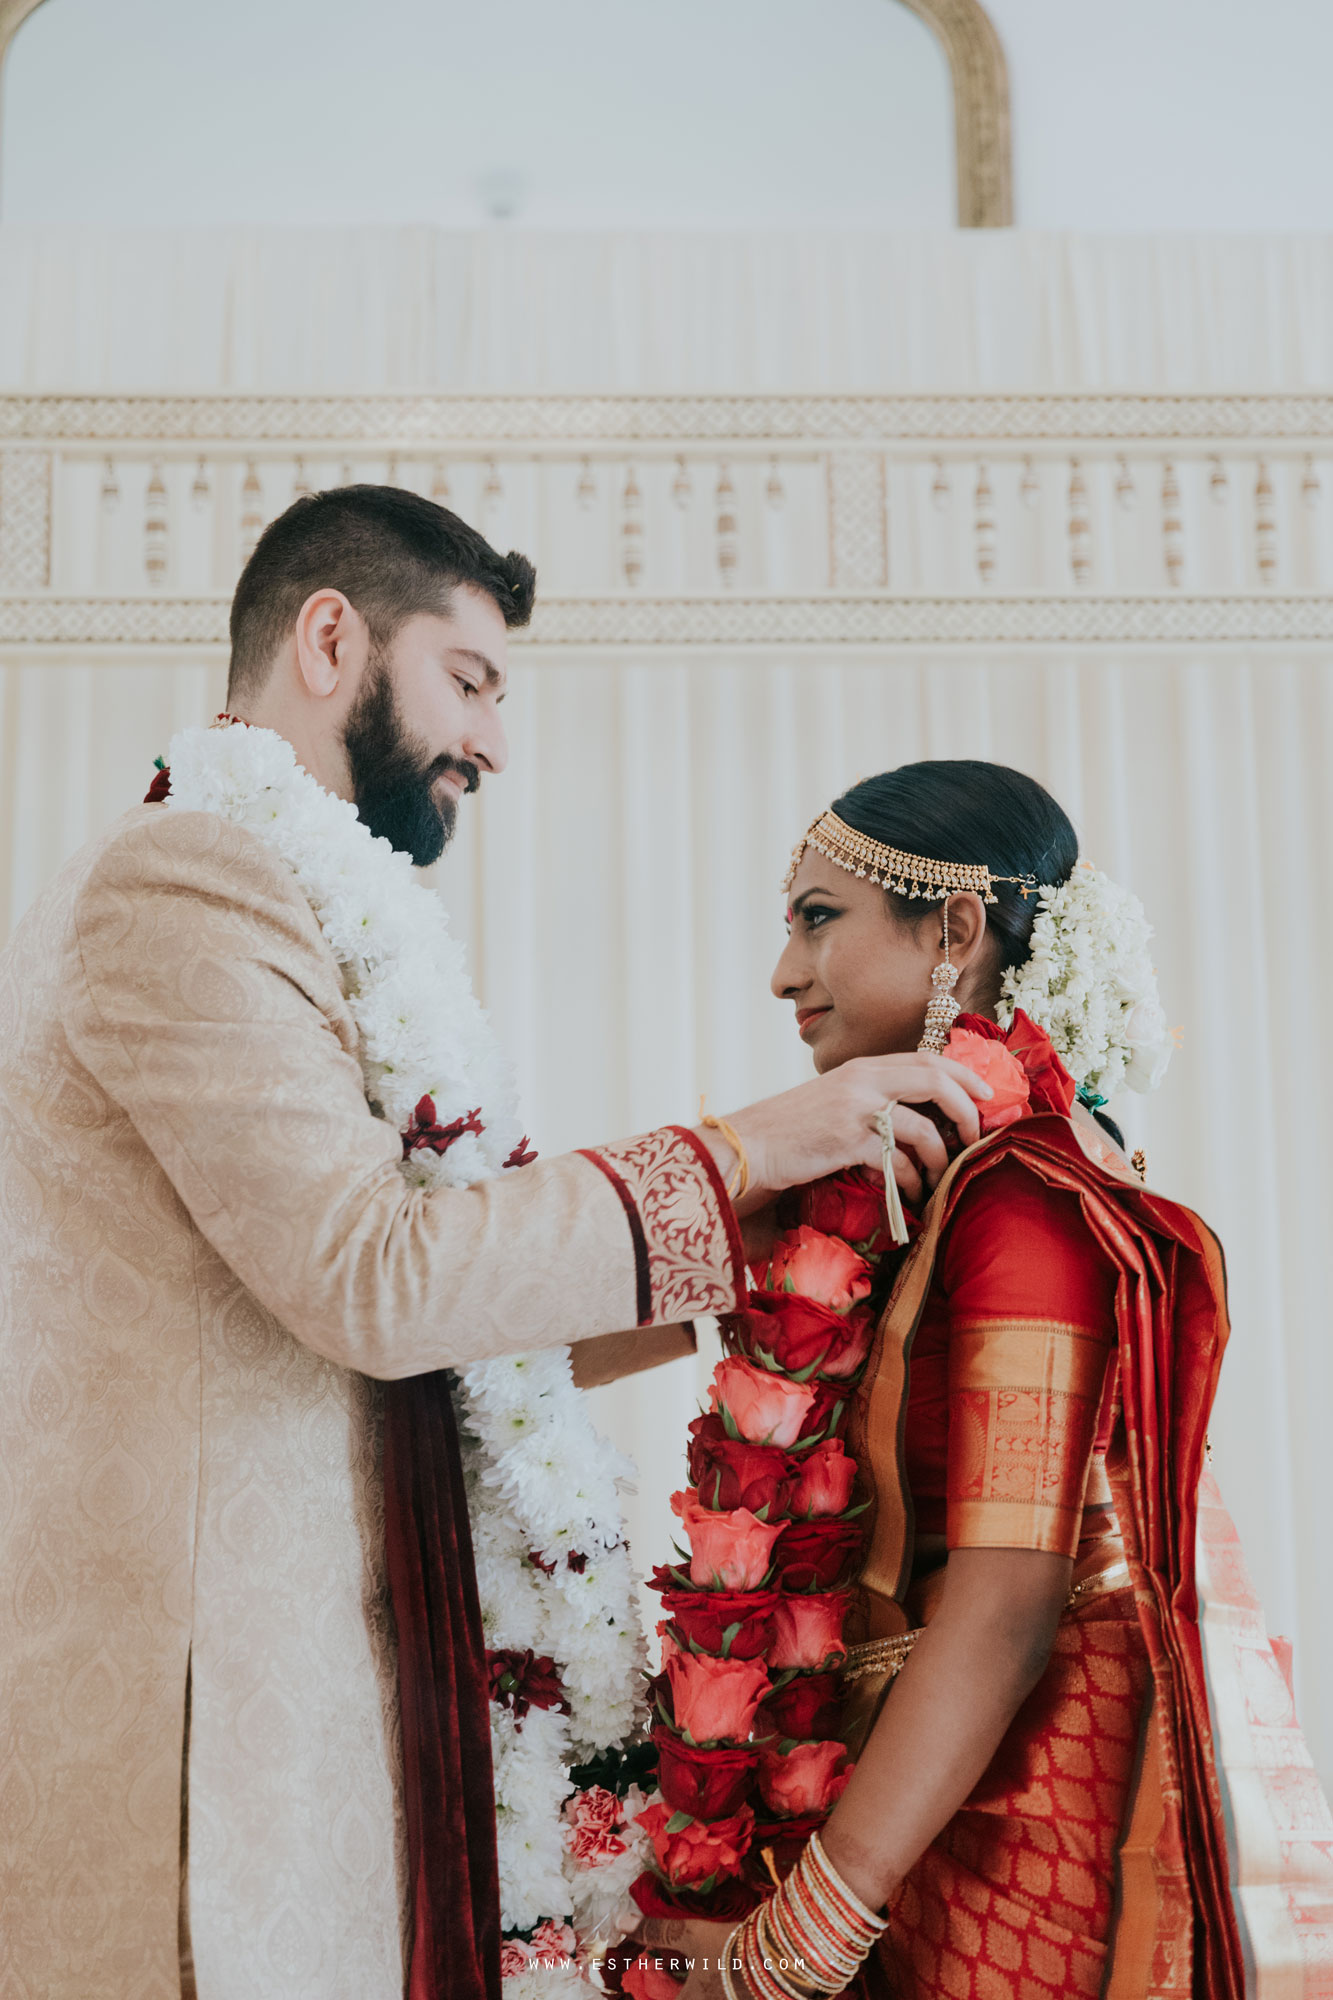 Northbrook_Park_Farnham_Surrey_London_Wedding_Hindu_Fusion_Esther_Wild_Photographer_IMG_4670.jpg